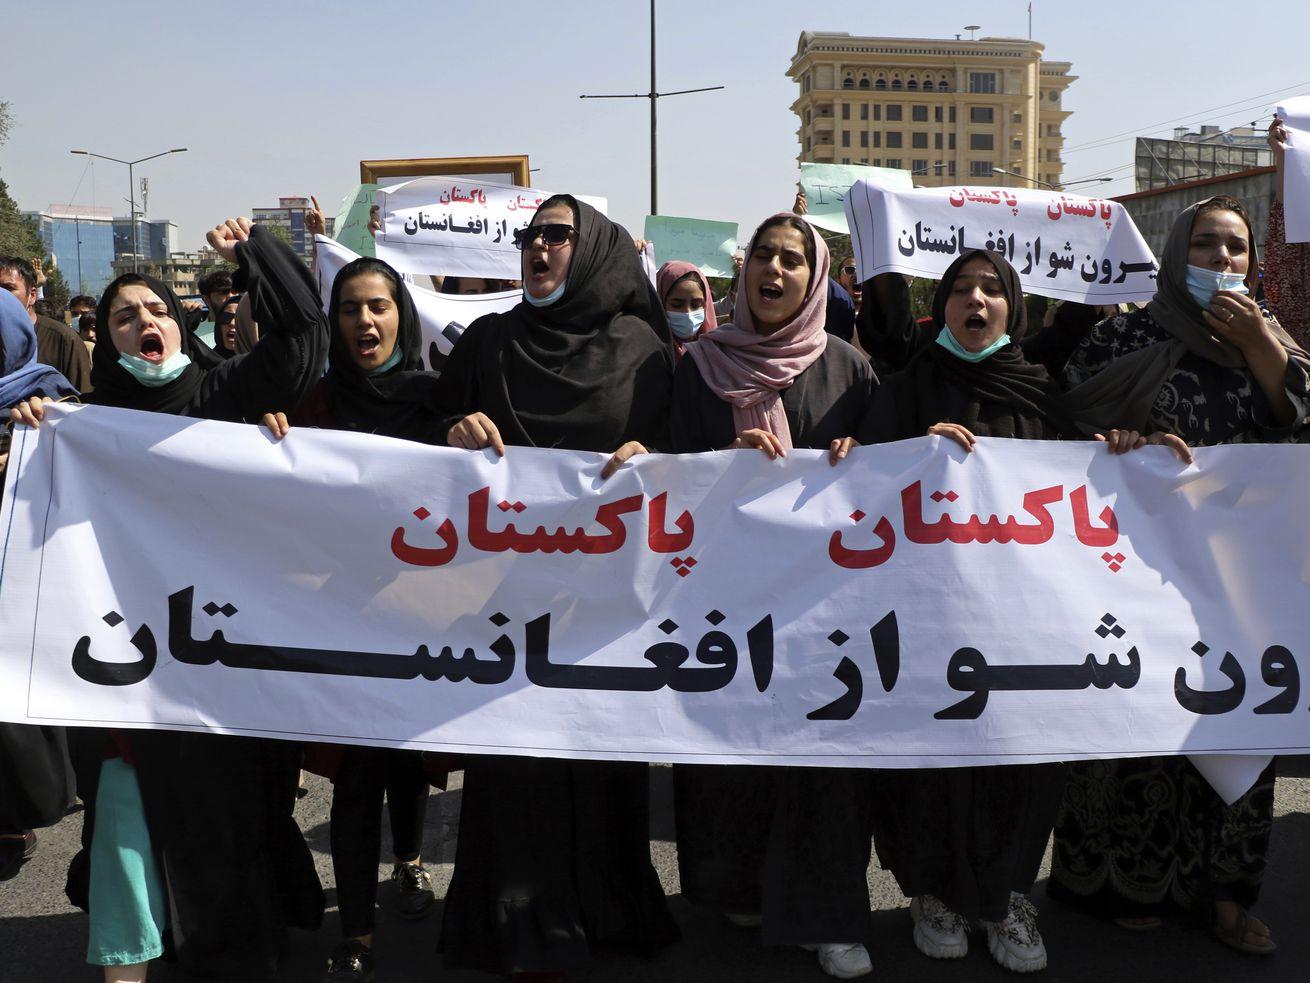 """Afghans shout slogans during an anti-Pakistan demonstration, near the Pakistan embassy in Kabul, Afghanistan, Tuesday, Sept. 7, 2021. Sign in Persian reads, """"Pakistan Pakistan Get out of Afghanistan."""""""